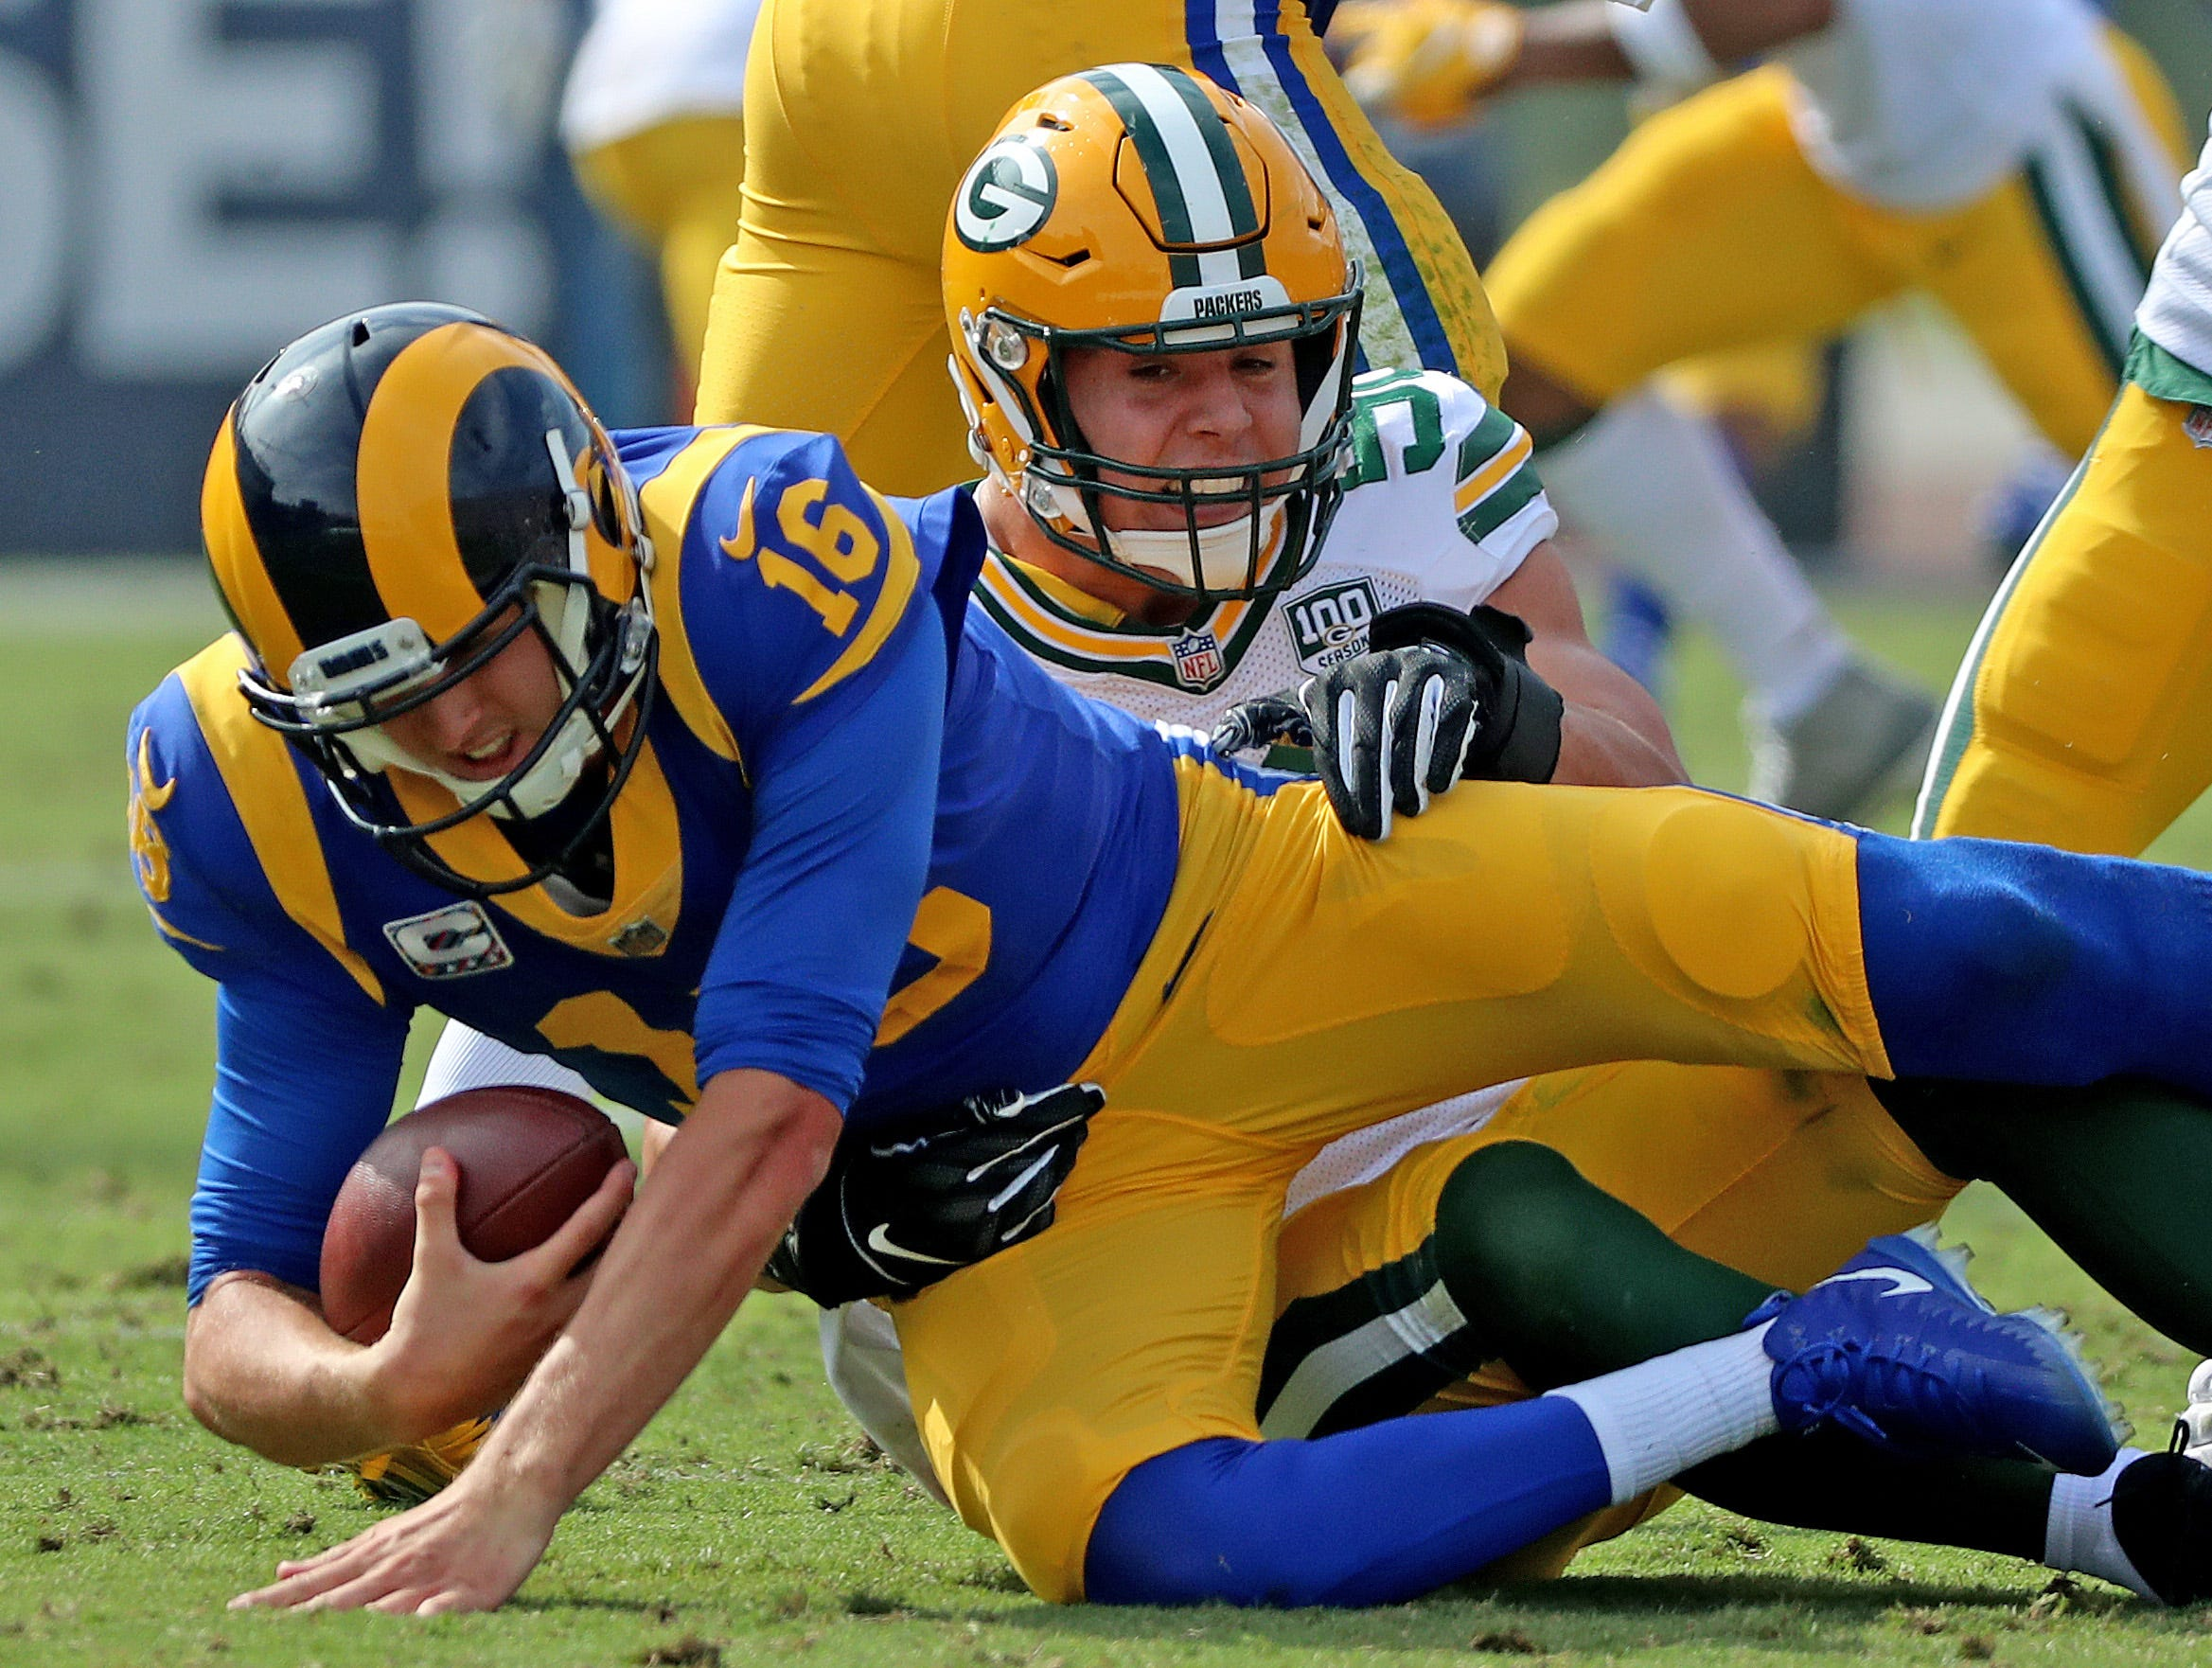 Green Bay Packers linebacker Blake Martinez (50) sacks quarterback Jared Goff (16) against the LA Rams Sunday, October 28, 2018 at the Memorial Coliseum in Los Angeles, Cal. Jim Matthews/USA TODAY NETWORK-Wis